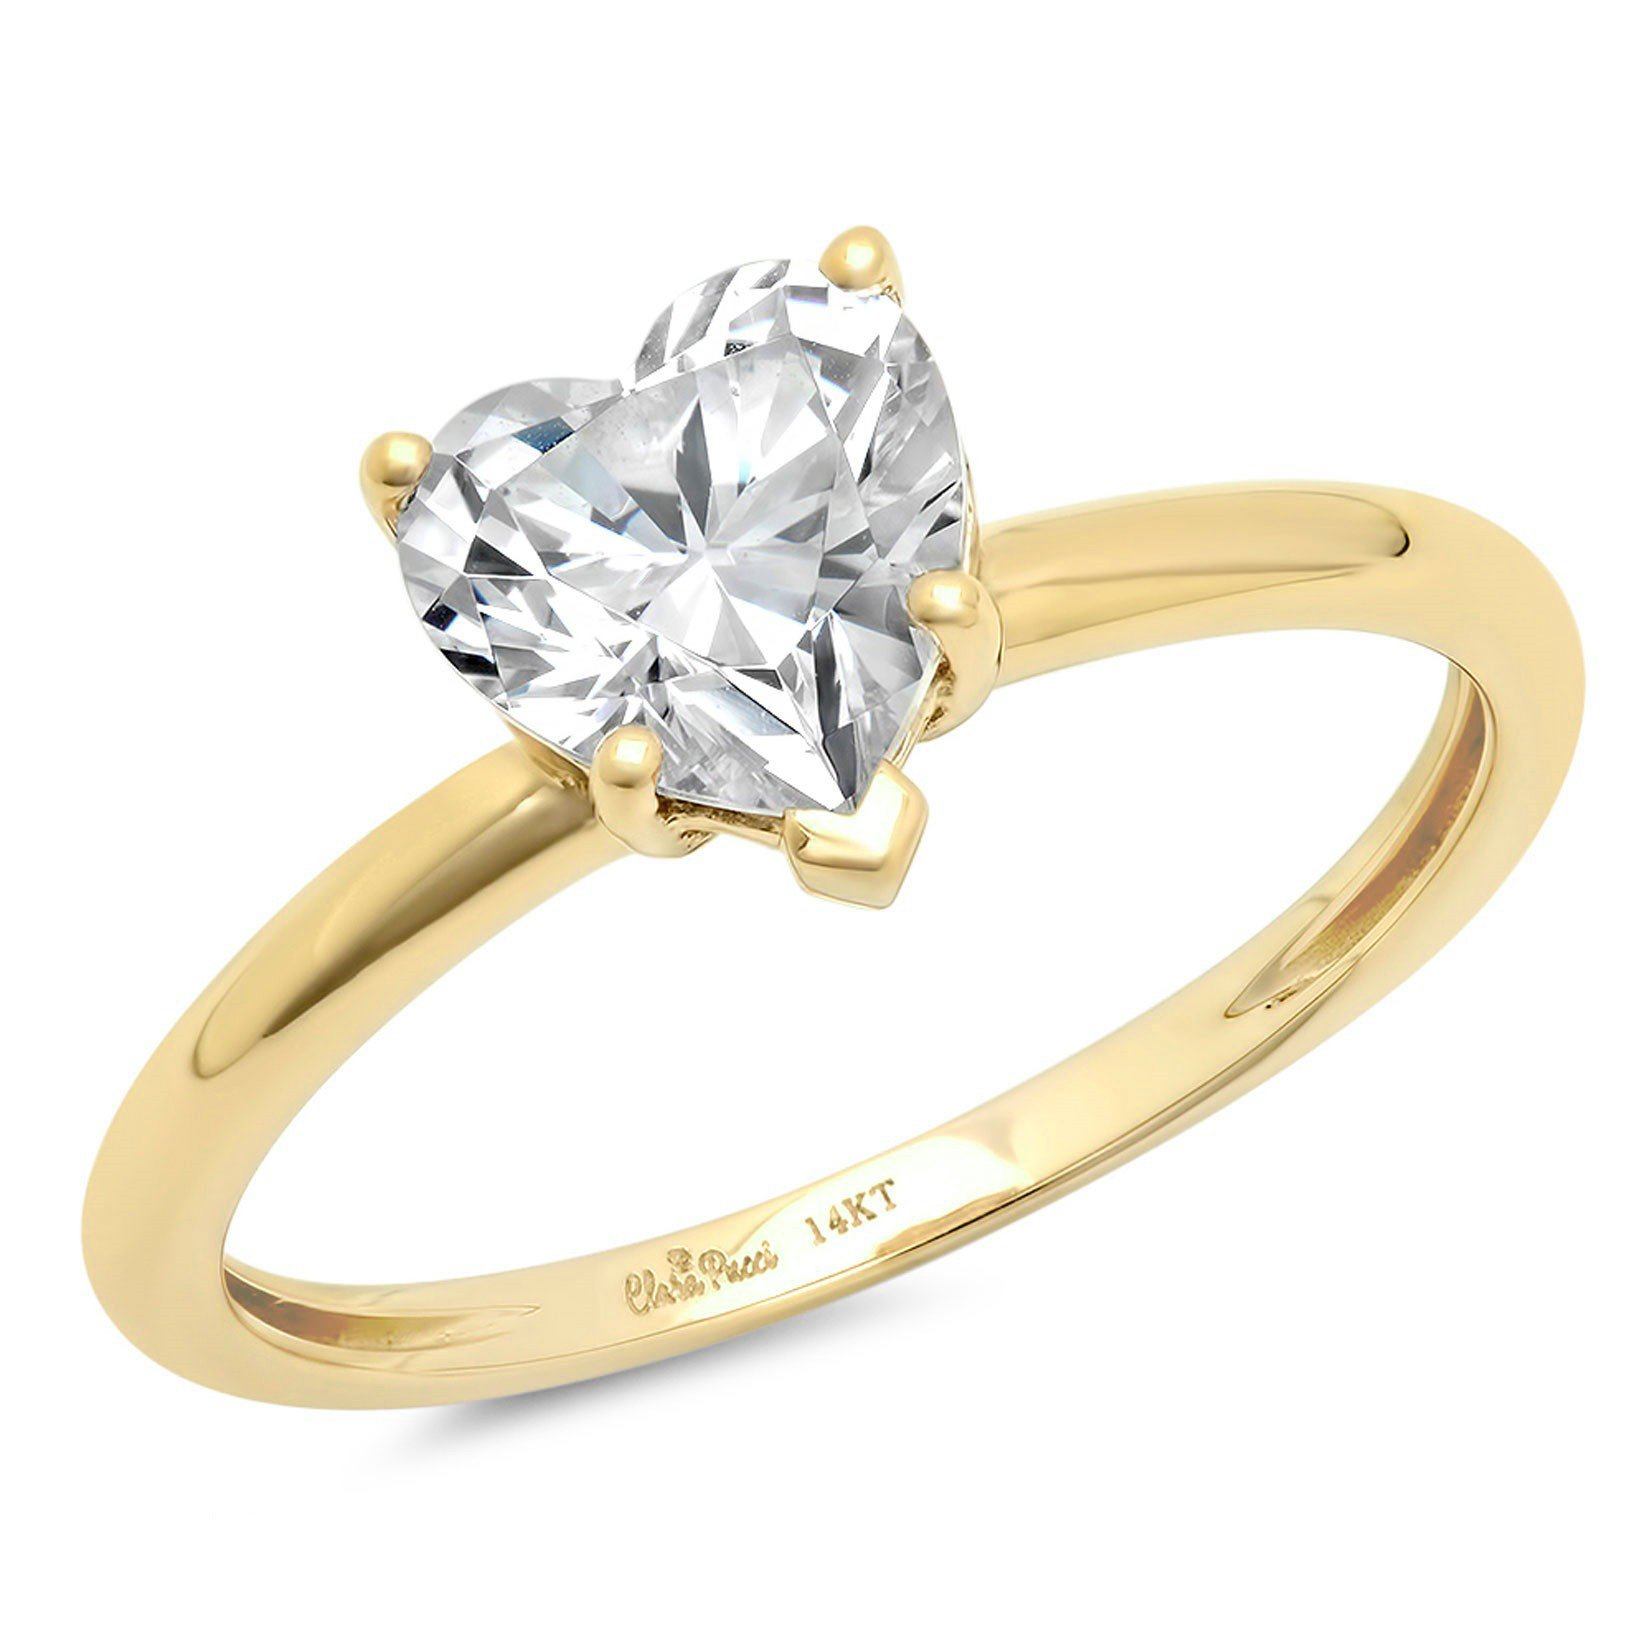 0.95ct Brilliant Heart Cut Solitaire Highest Quality Lab Created White Sapphire Ideal VVS1 D 5-Prong Classic Designer Statement Ring Solid Real 14k Yellow Gold for Women